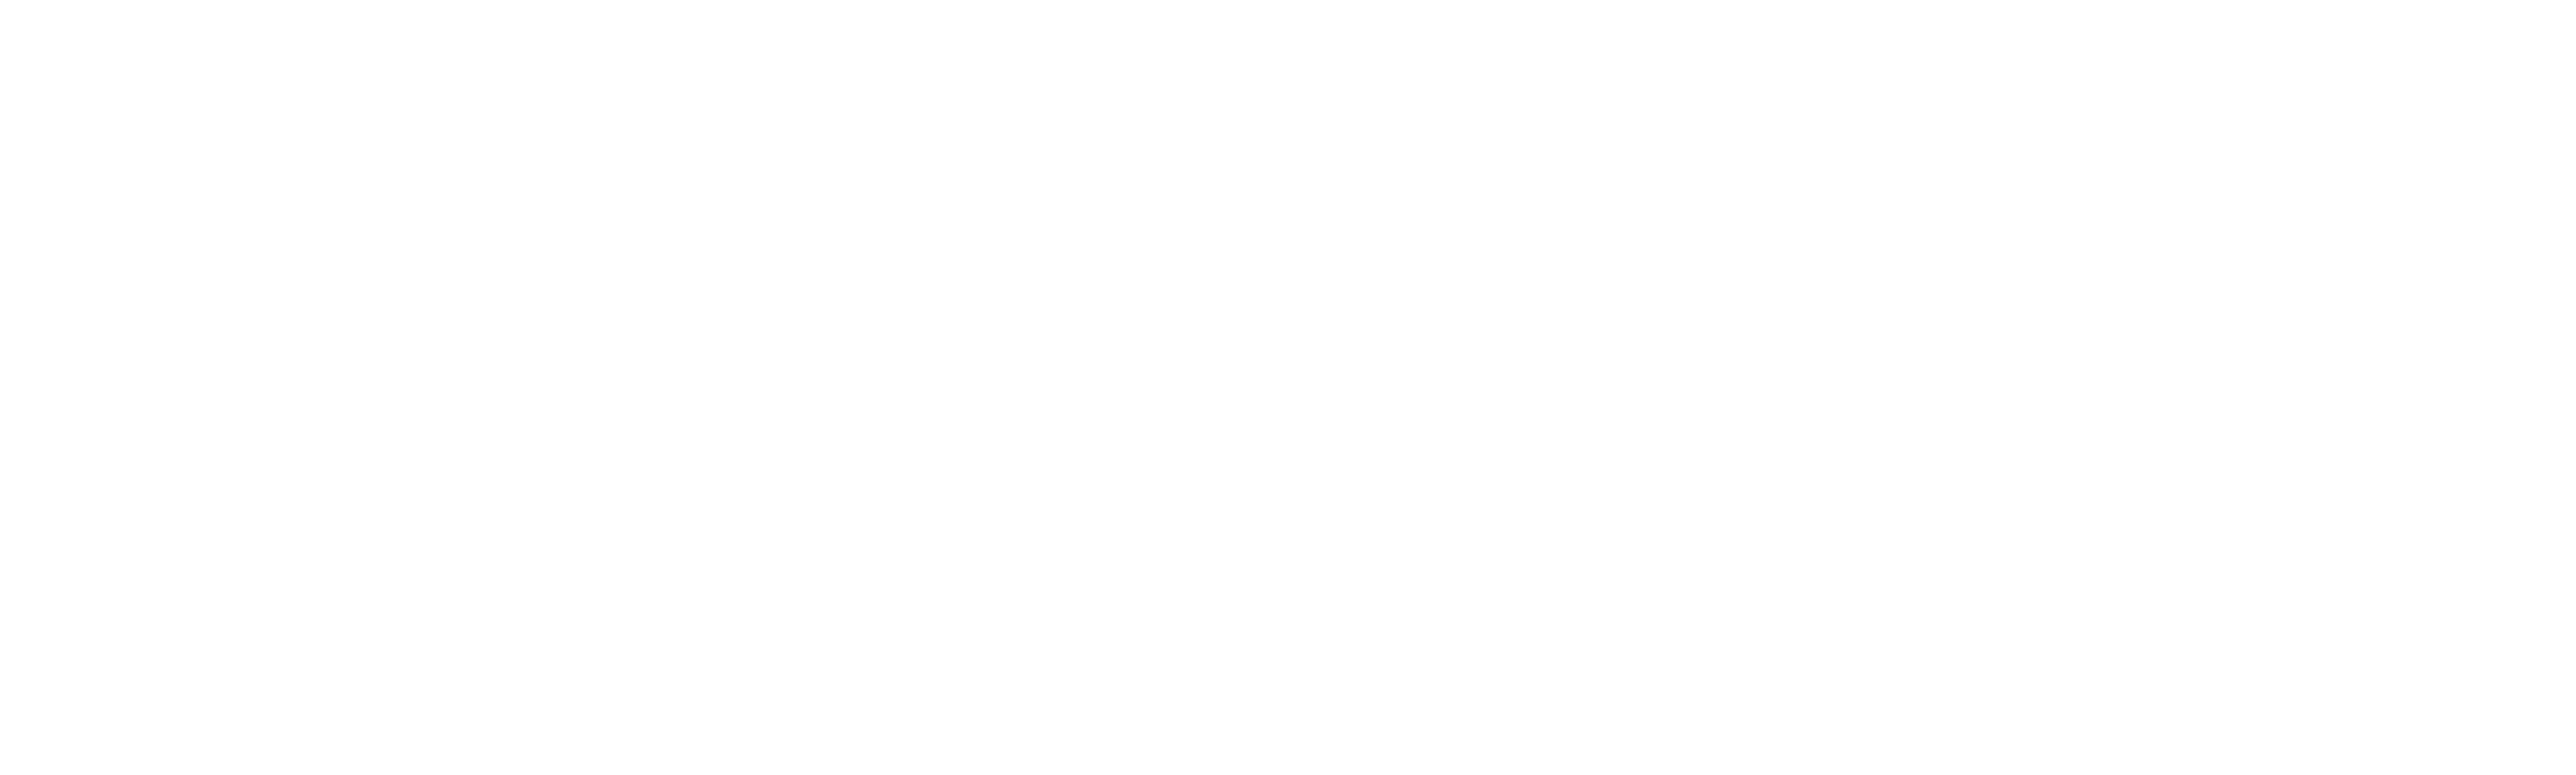 Cliff Garden Florist - Flower Delivery in Fair Lawn, NJ